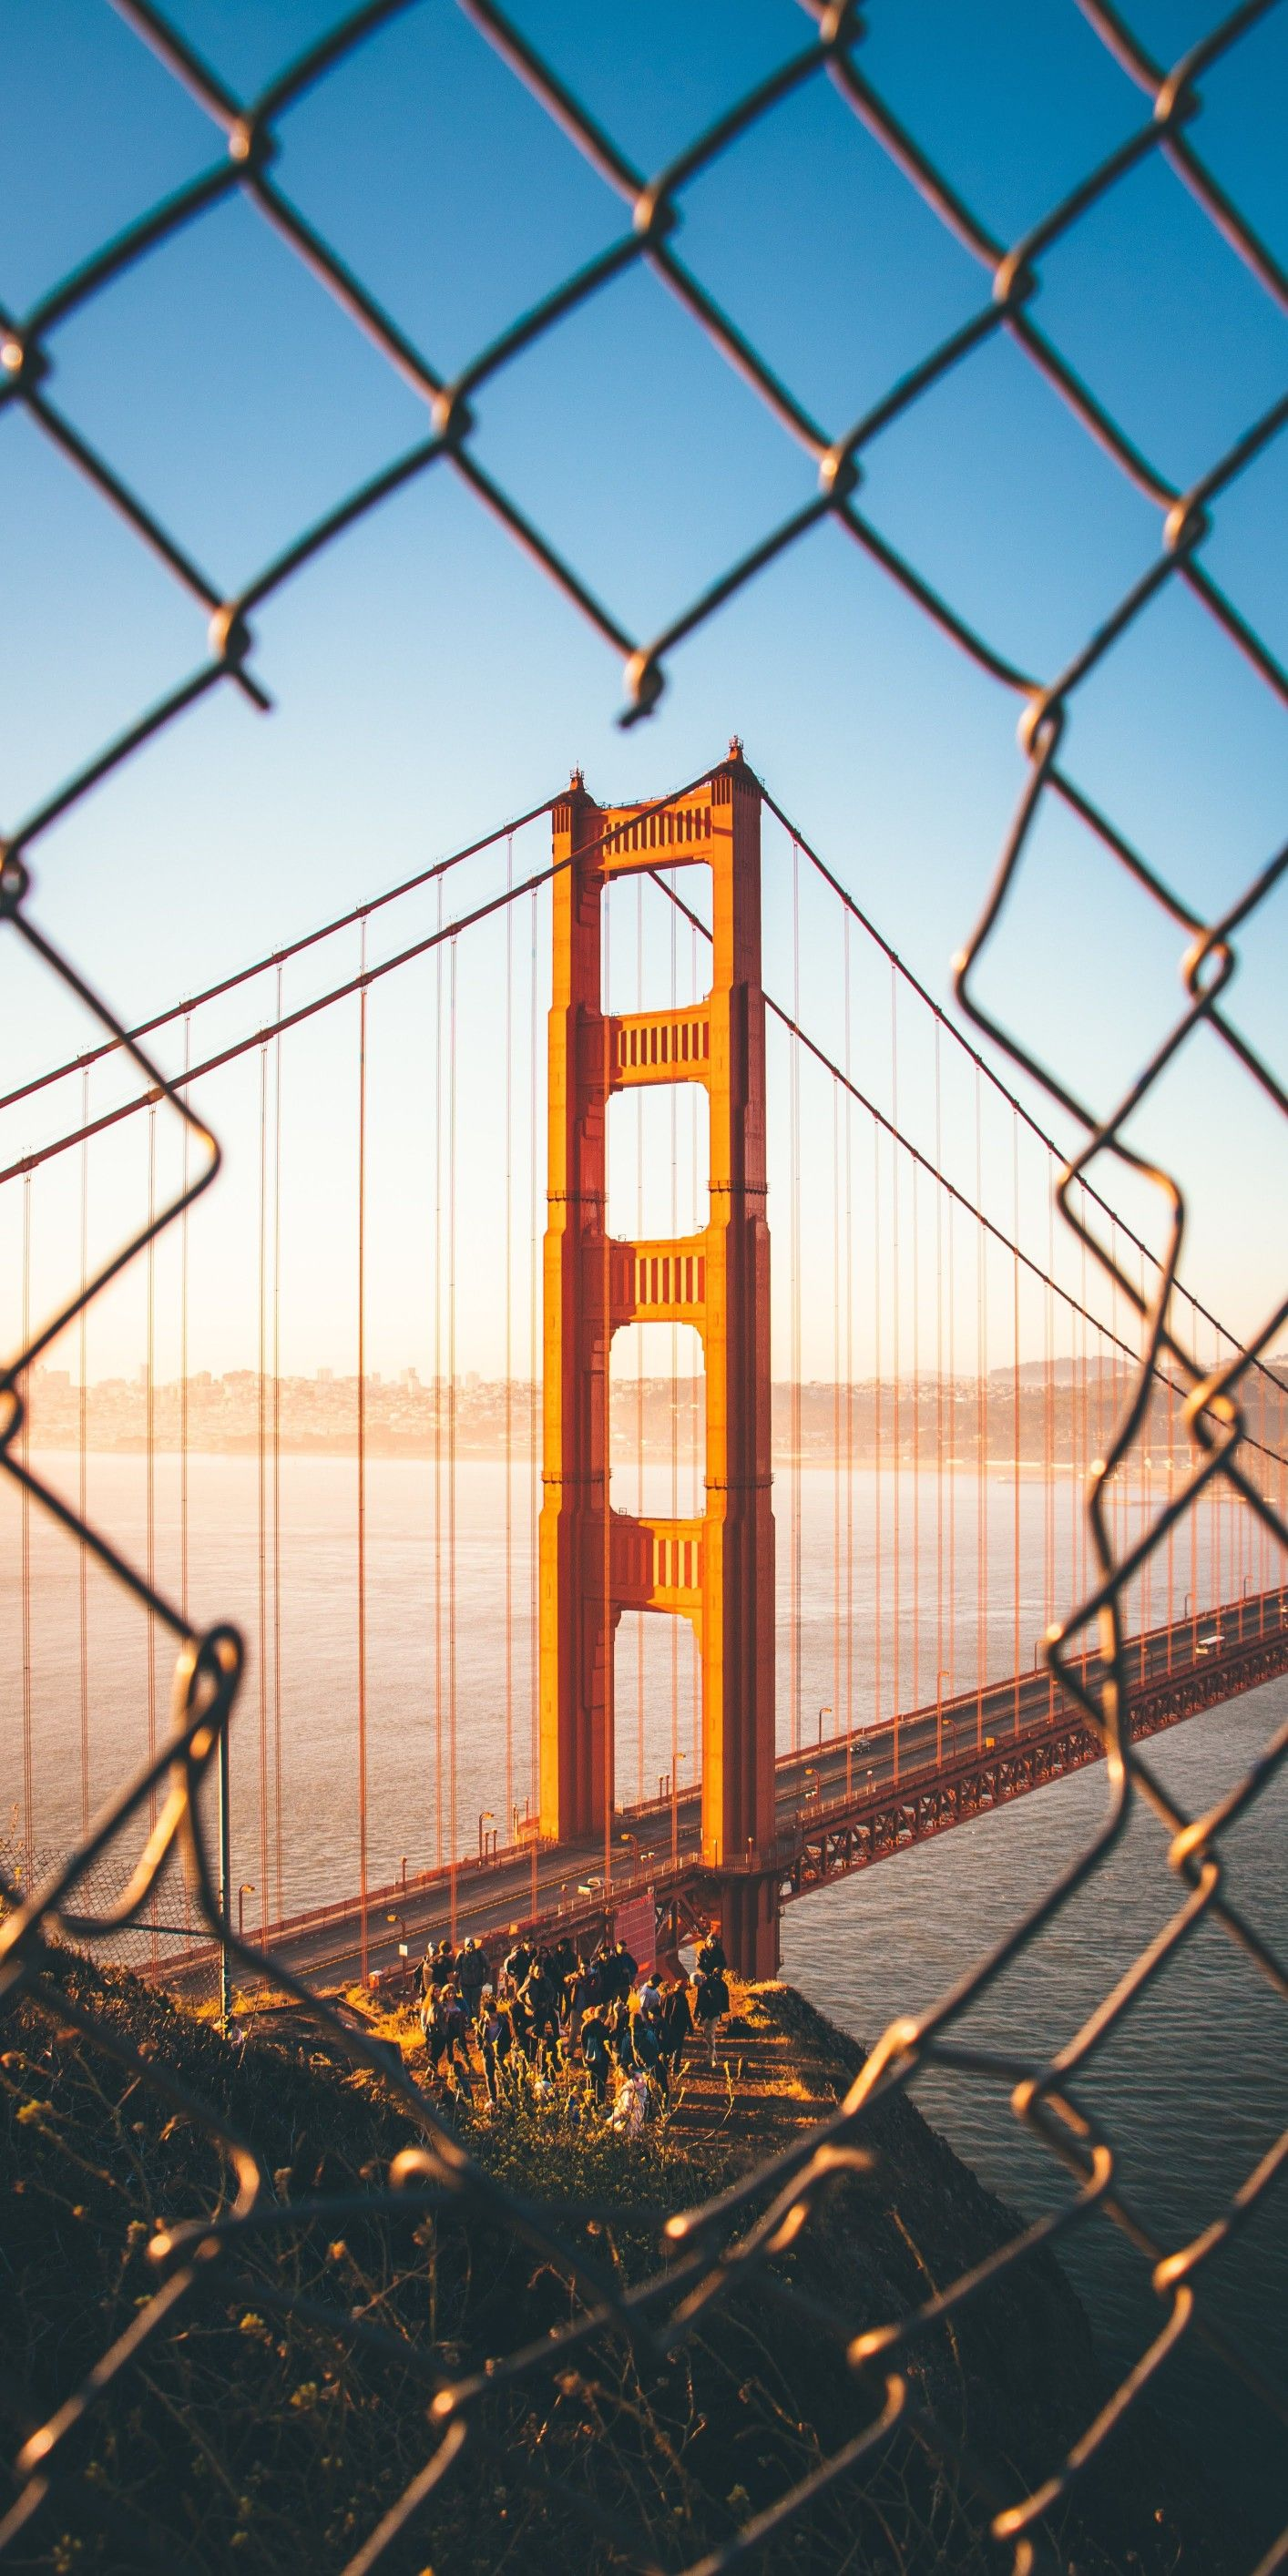 Wallpapers For Iphone X Iphone 8 And Iphone Golden Gate Bridge